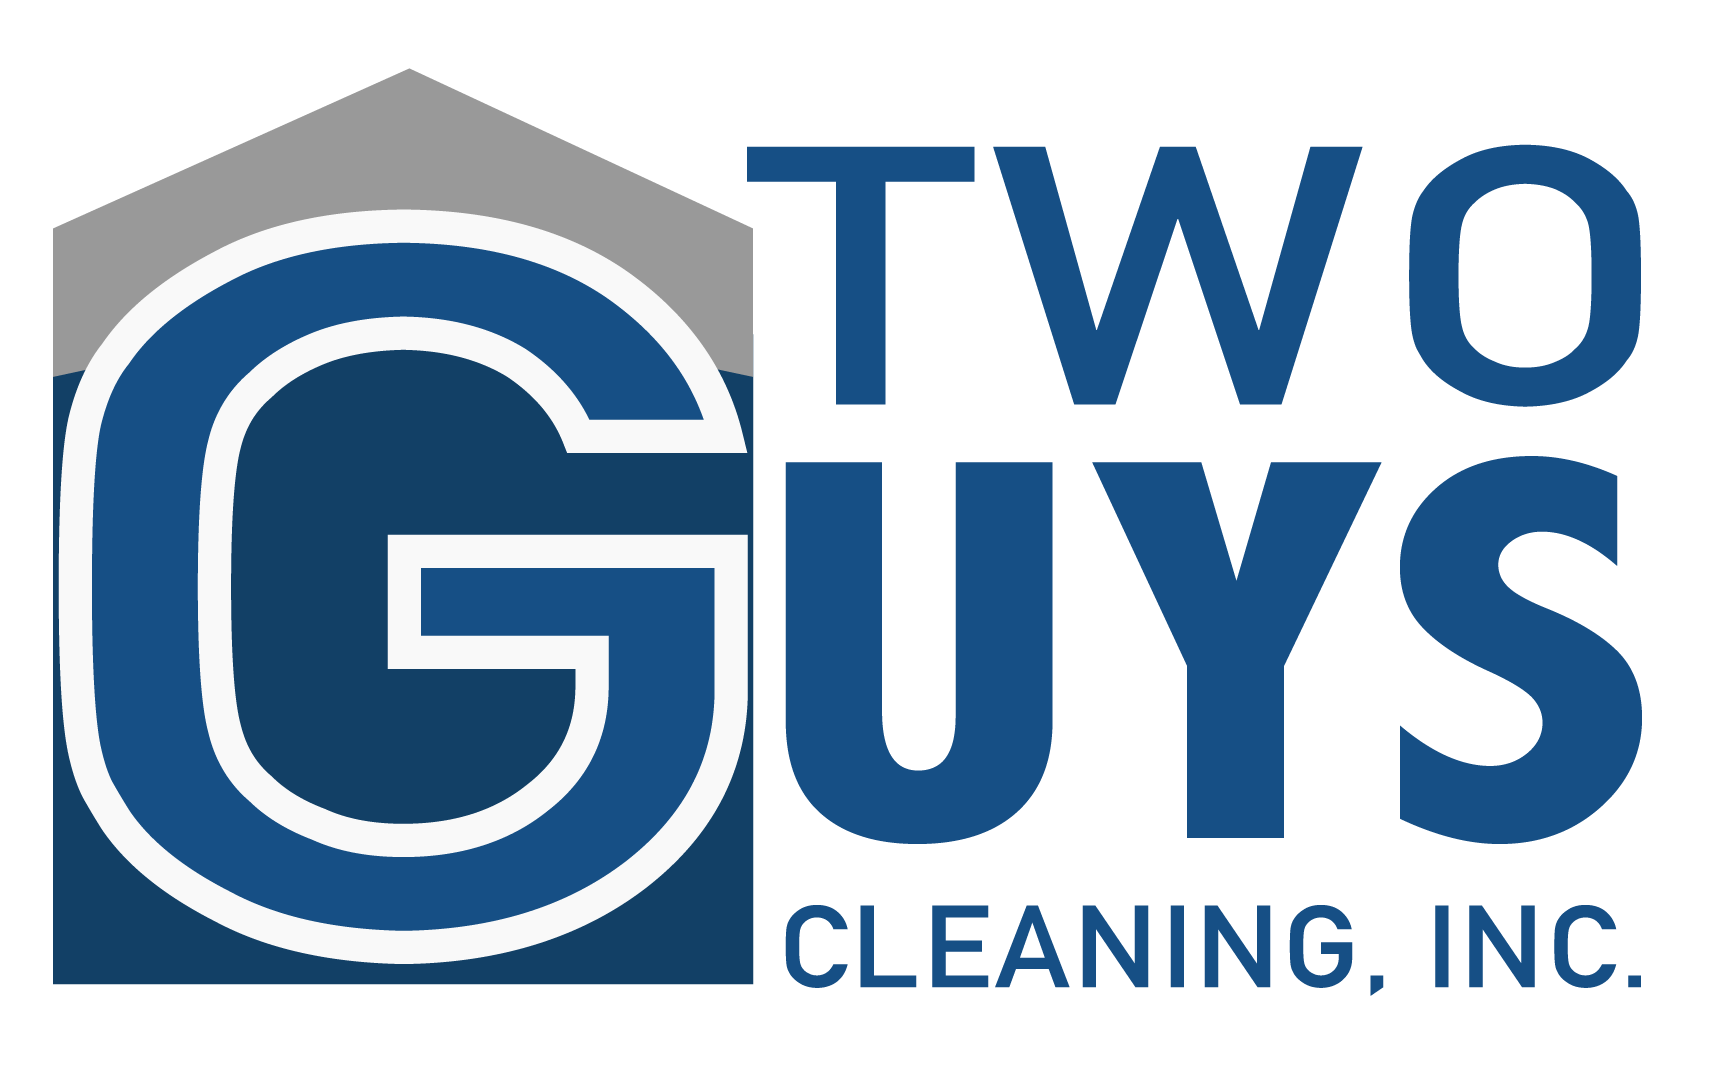 Two Guys Cleaning Services